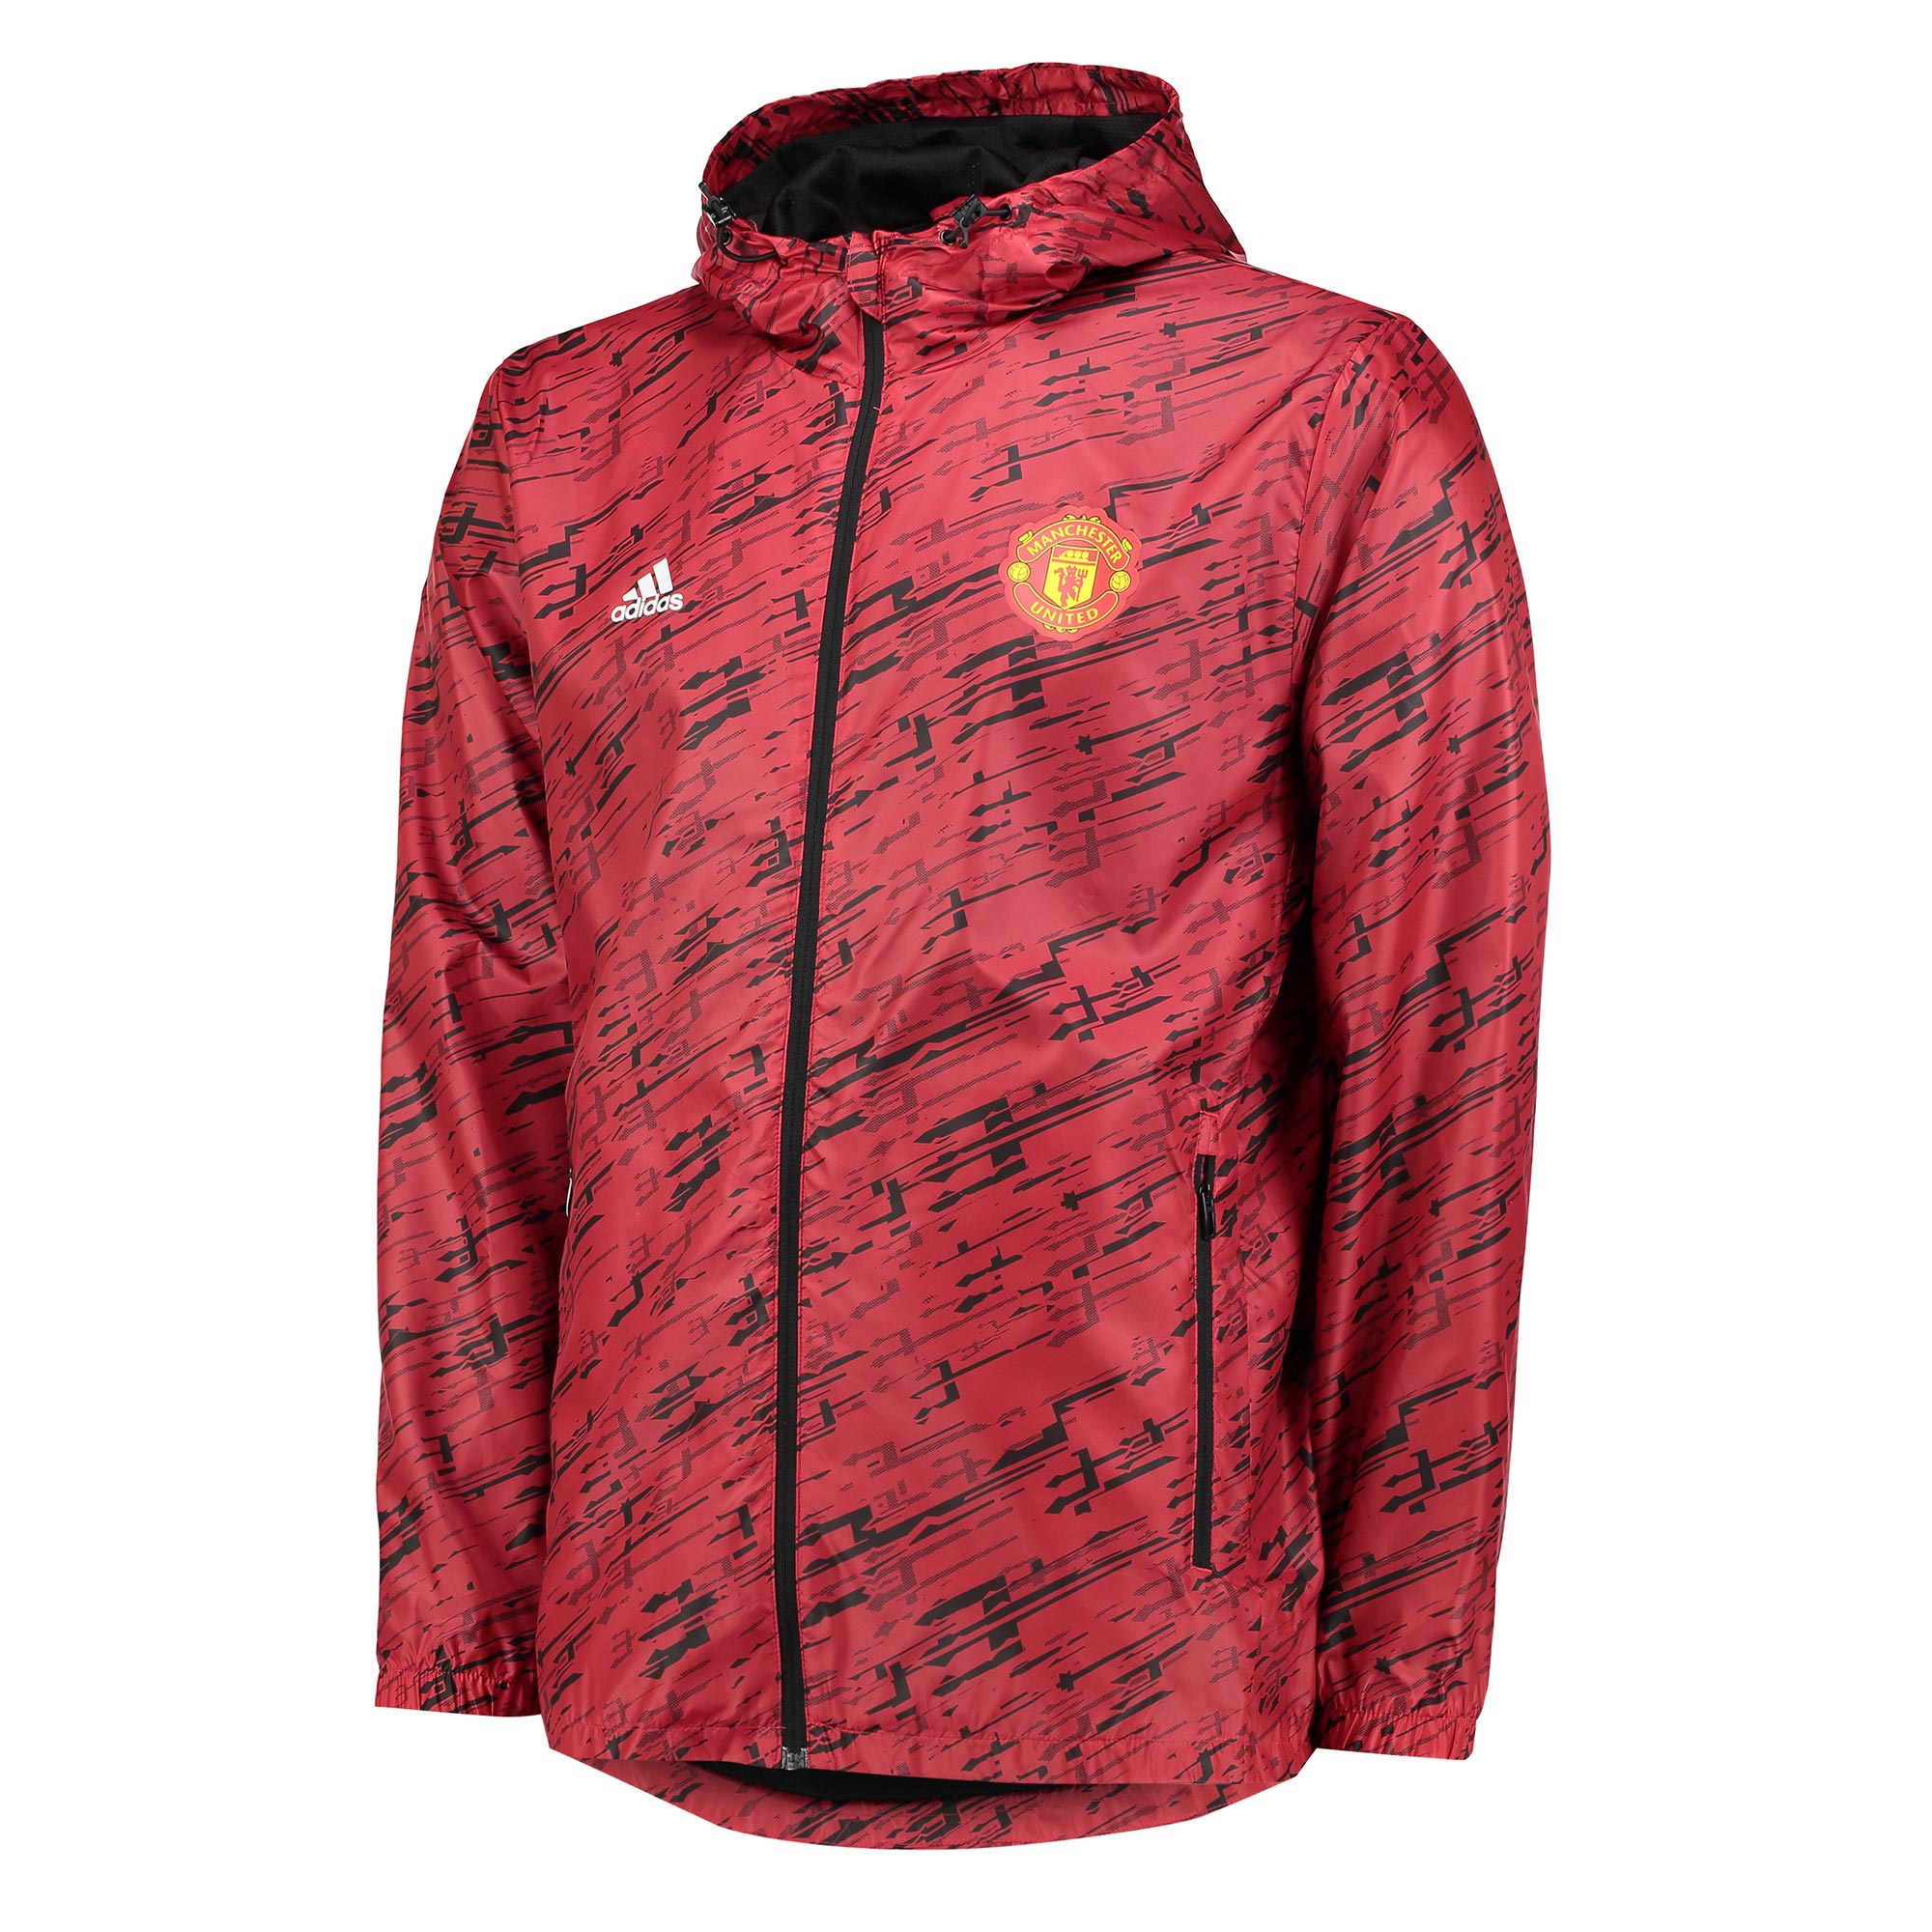 Manchester United Windbreaker - Red